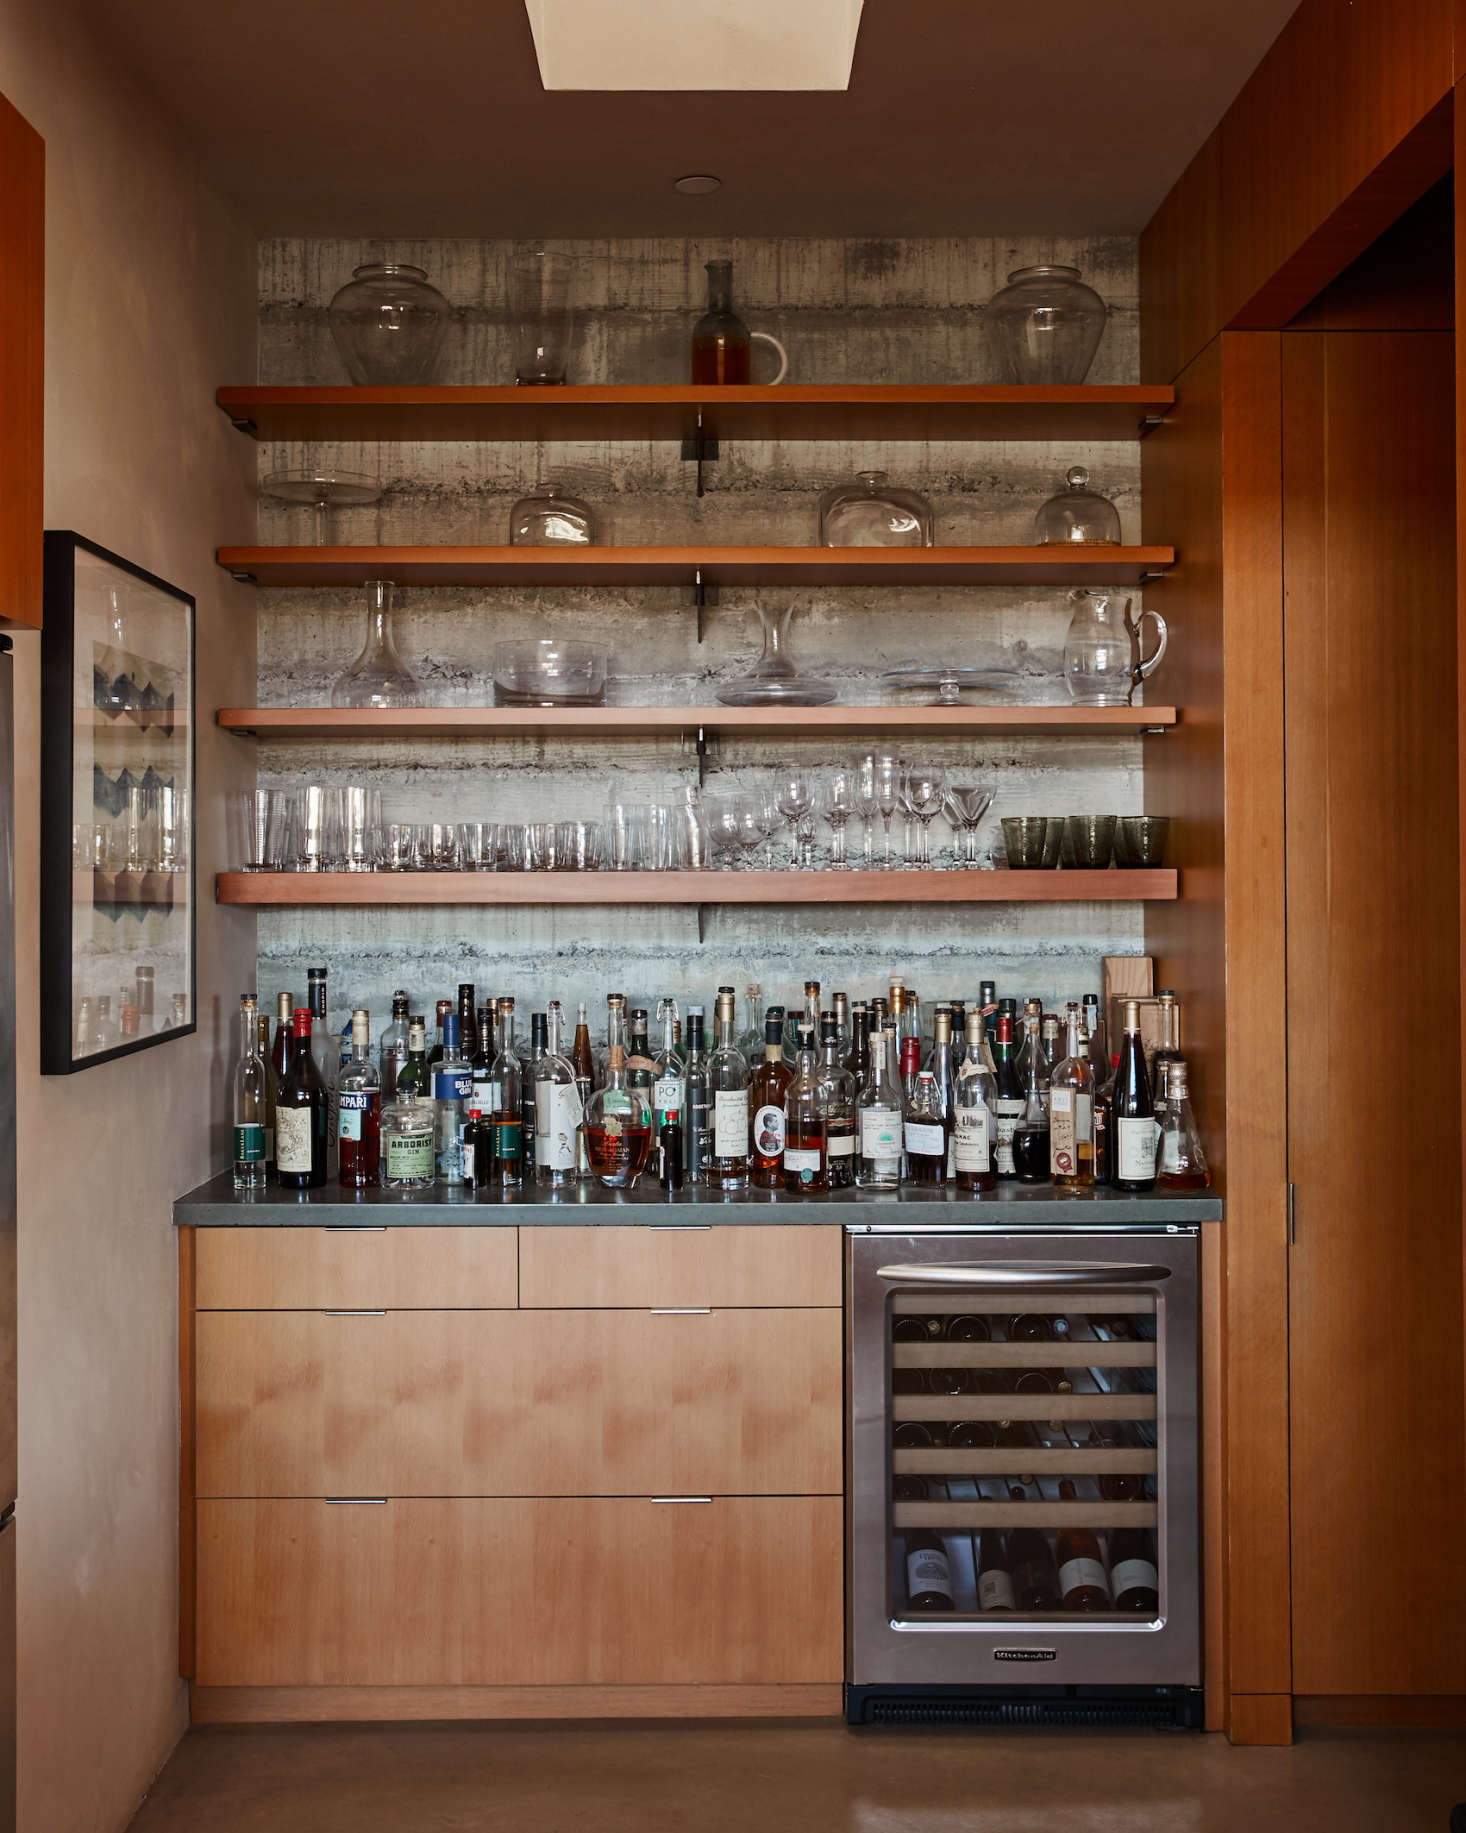 An amply stocked liquor cabinet and under-counter fridge (filled with Baker Lane wines) marks the entrance to the walk-in pantry. Floors throughout the house are concrete with an integrated pigment.